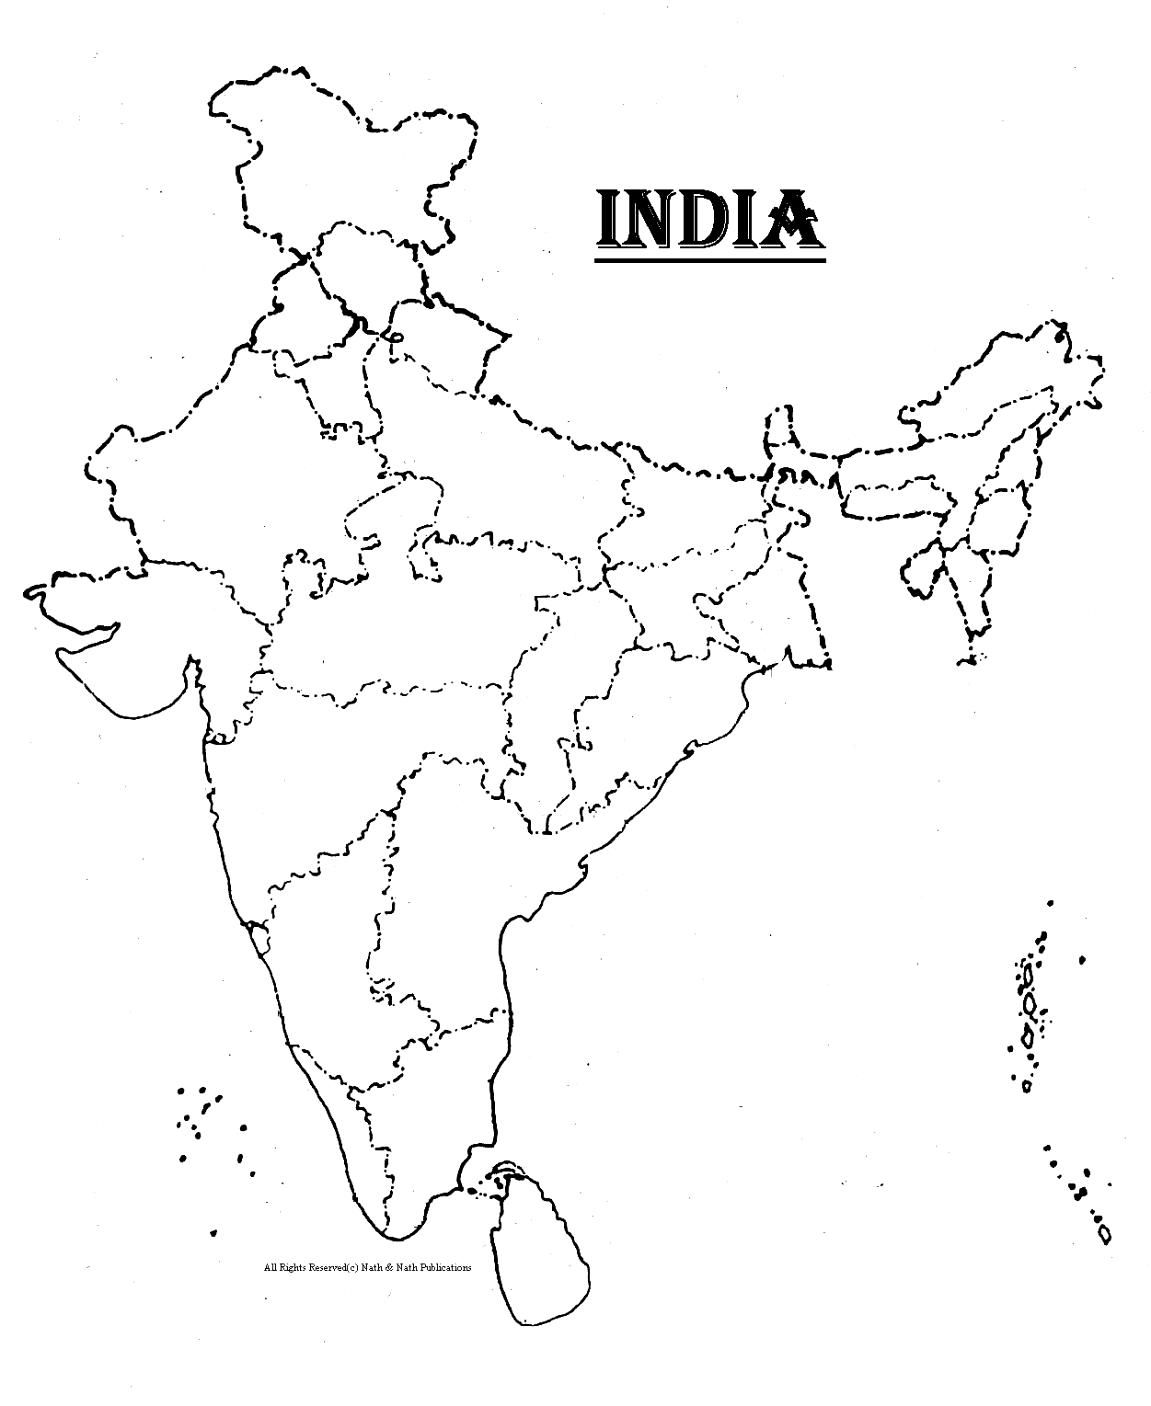 India map with cities clipart black and white clip art download Pin by Christine Srivastava on Homeschool | India map, China ... clip art download